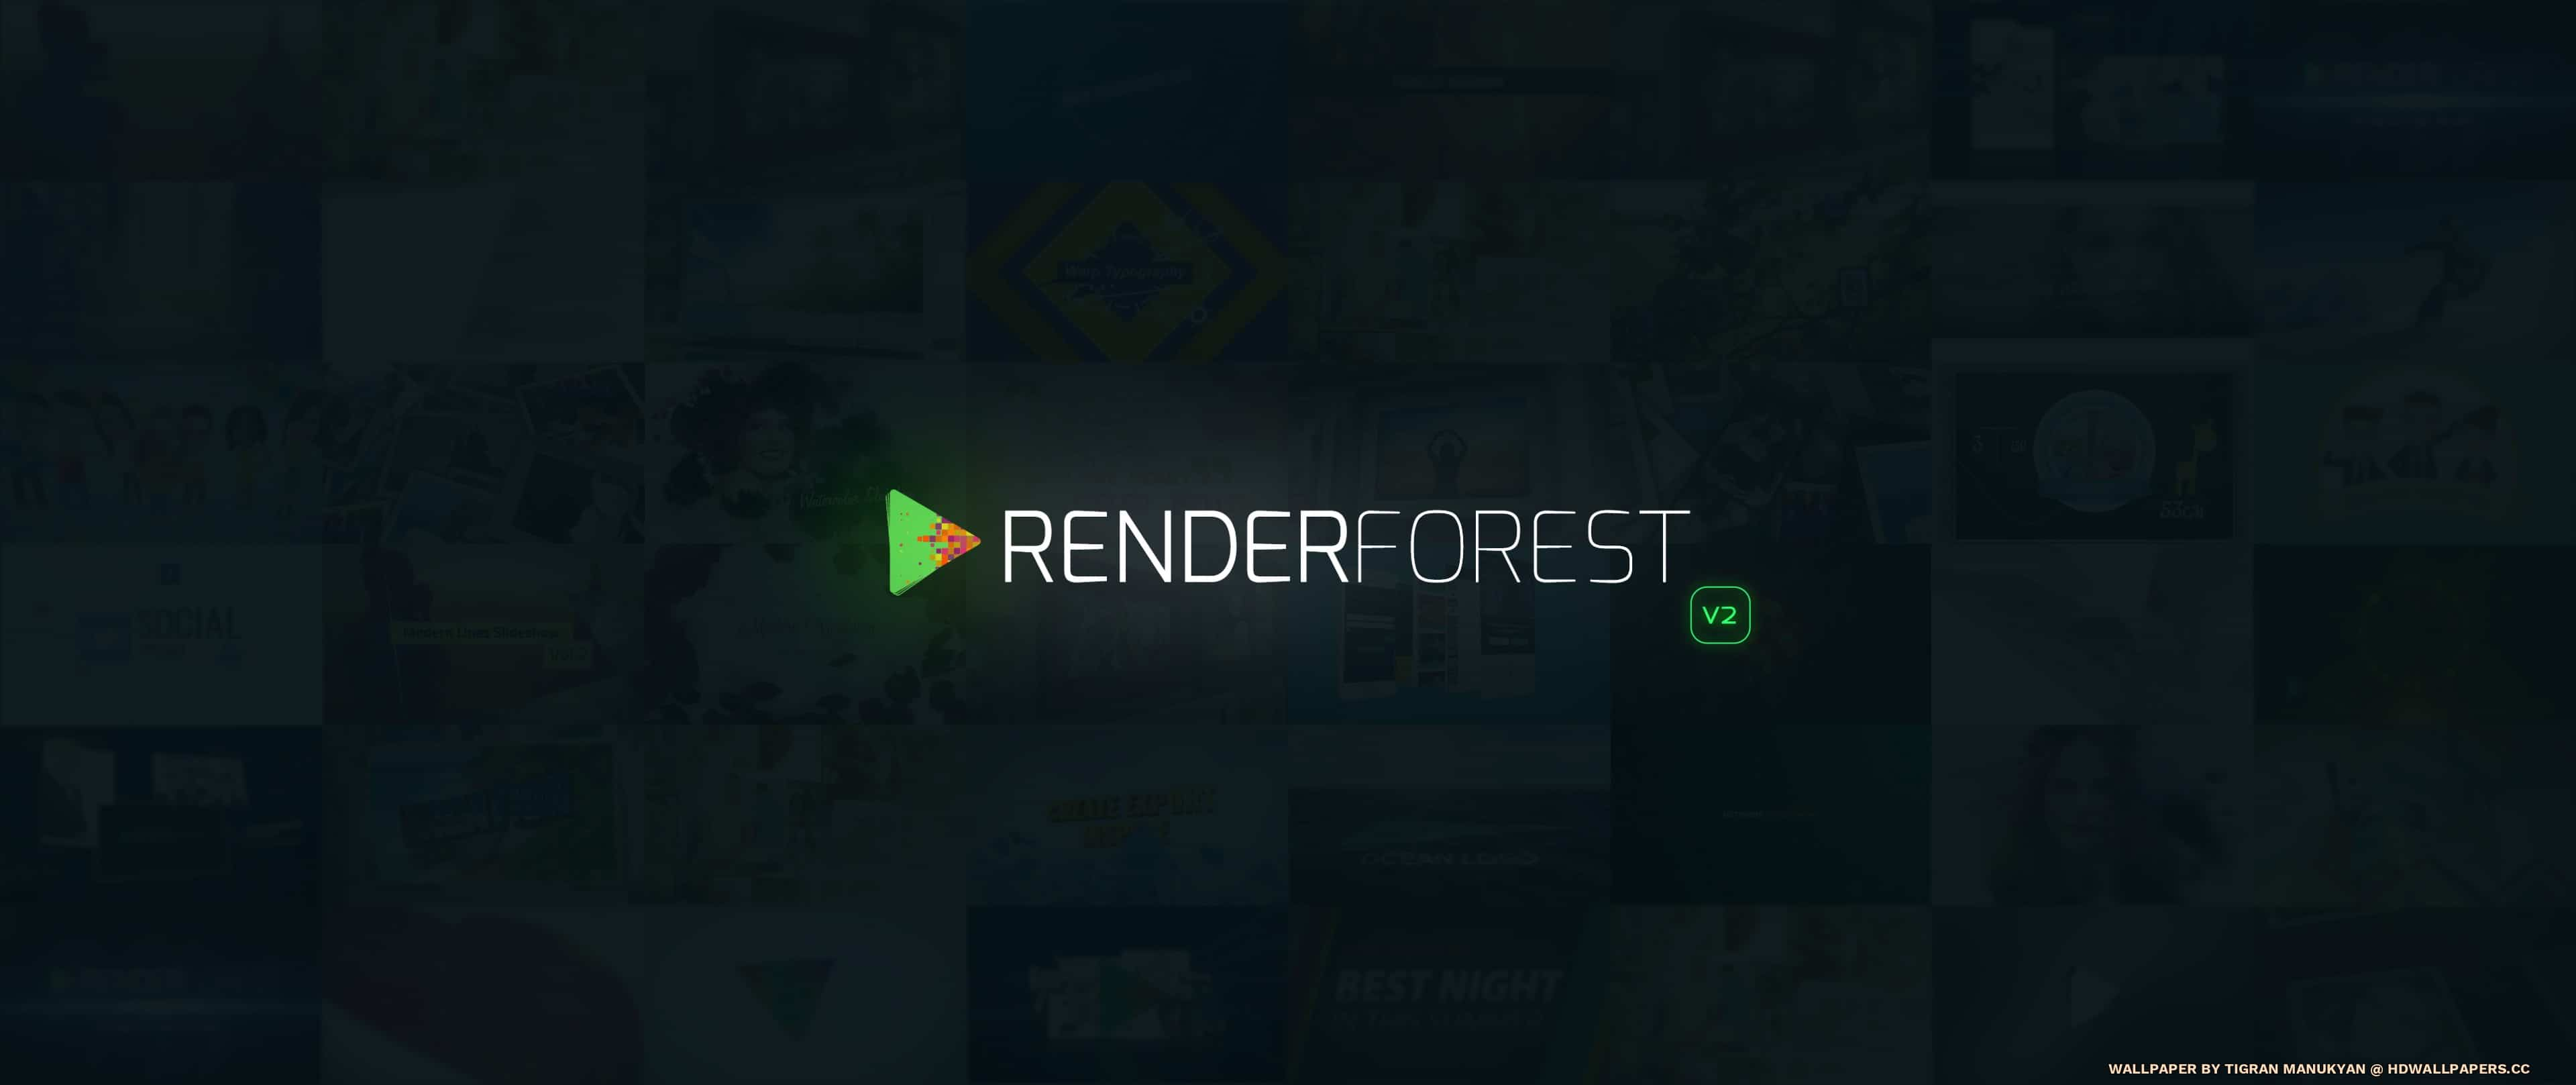 Renderforest Neon V2 Hd Wallpapers